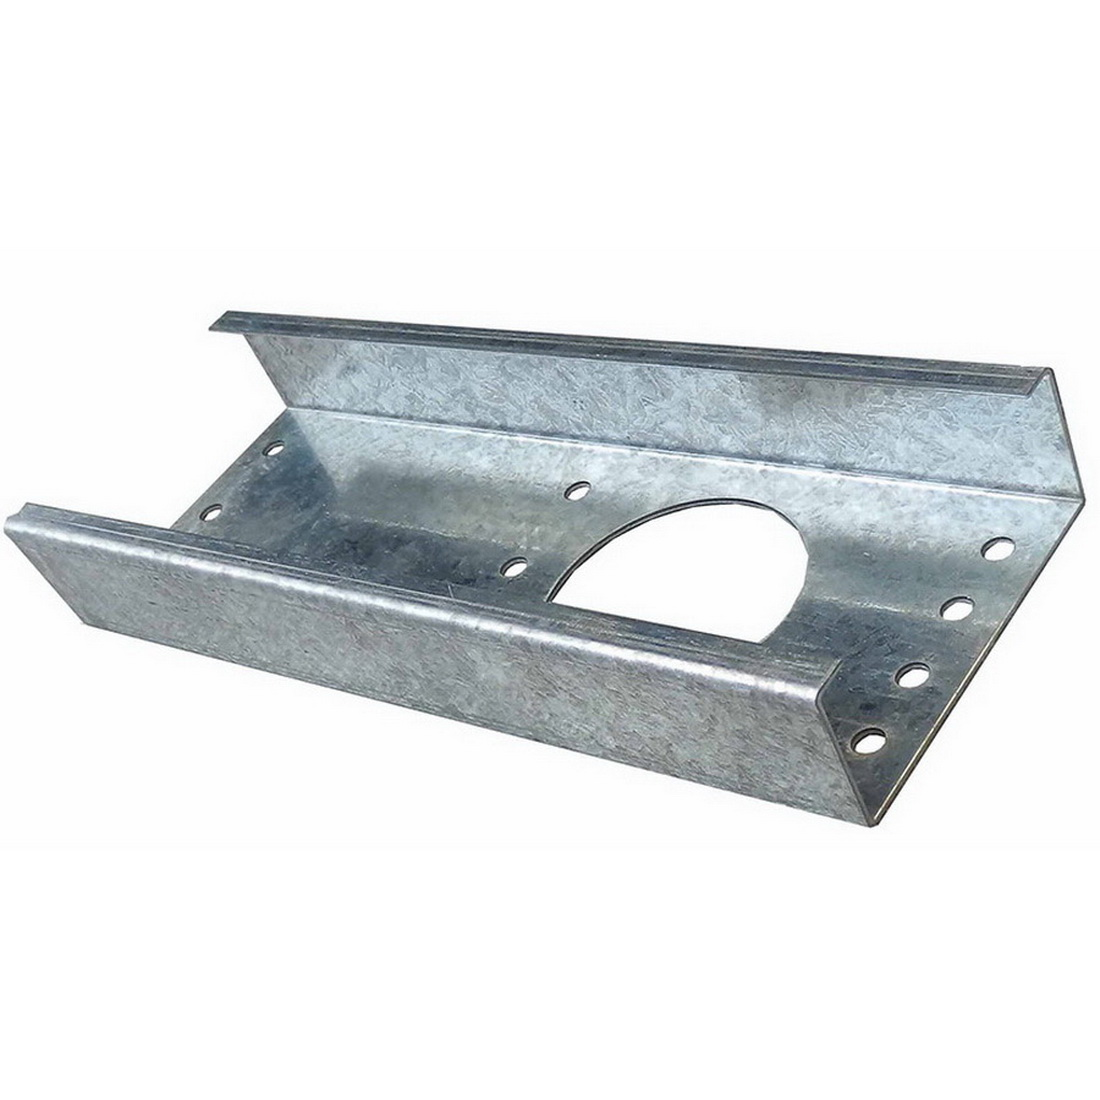 Pryda Frame Fix Drain Plate Stiffner 240 x 86 x 35mm Galvanised Steel With 10 x 14G x 75mm Tek Screw